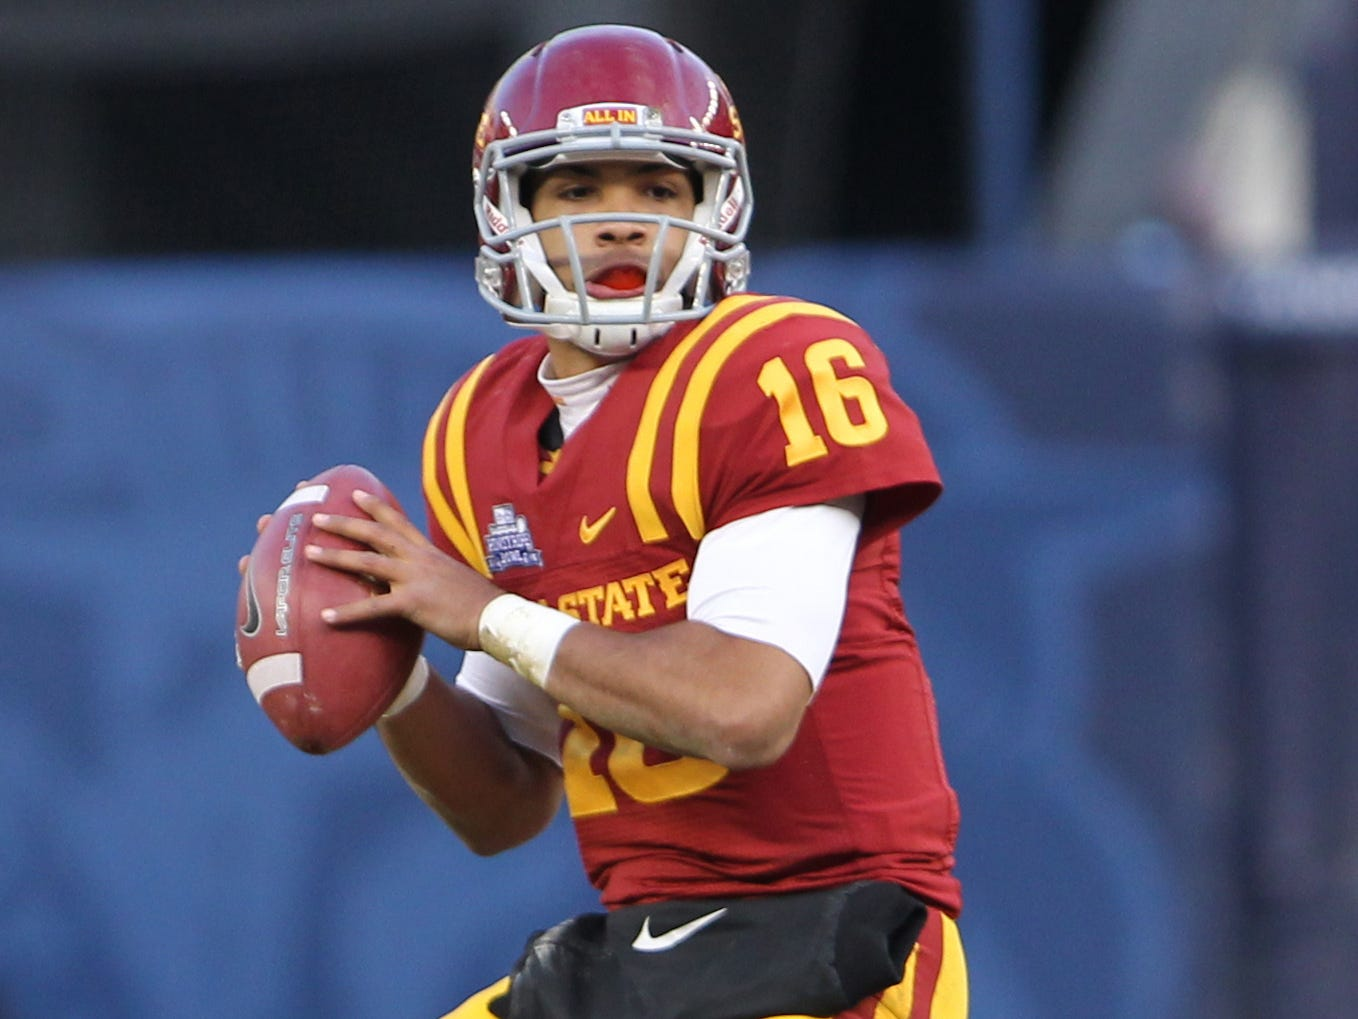 Iowa State Cyclones quarterback Jared Barnett (16) sends a pass during the first quarter against the Rutgers Scarlet Knights at the 2011 Pinstripe Bowl at Yankee Stadium.